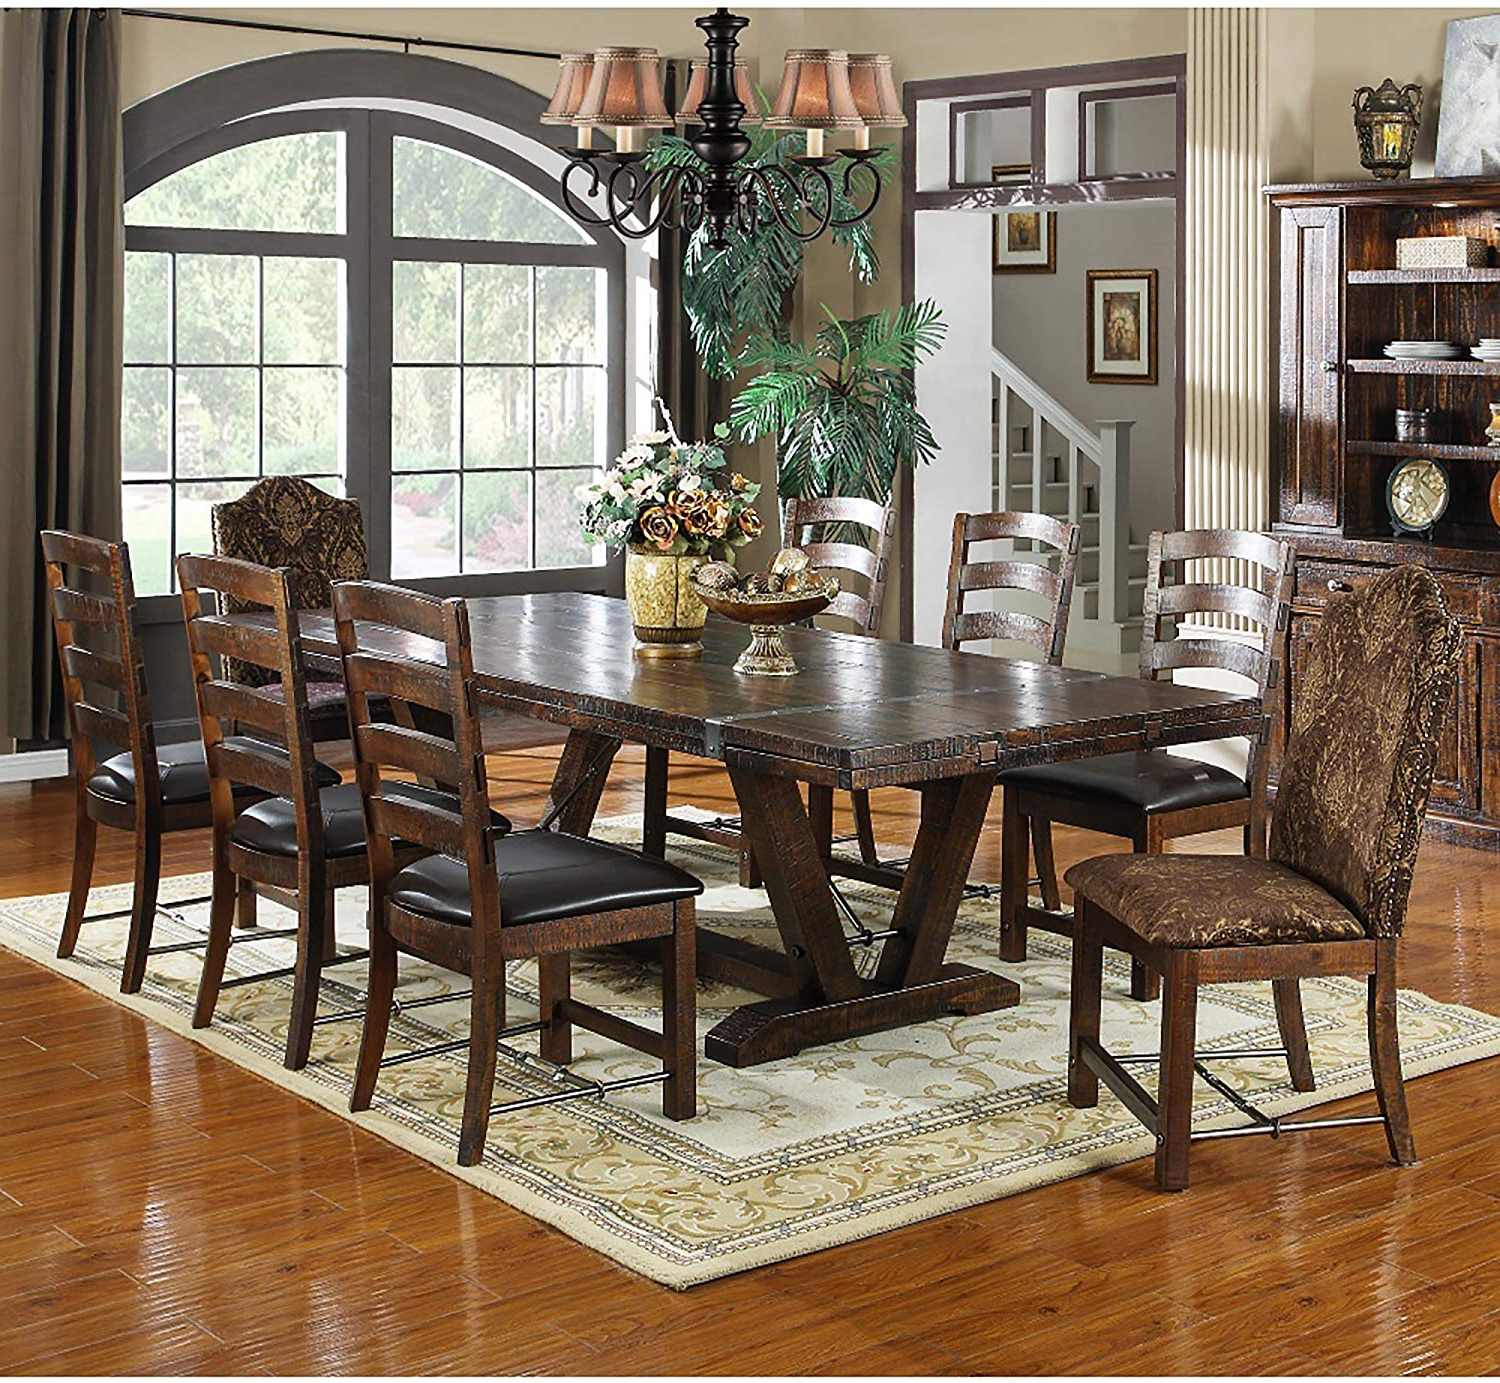 Rustic Country 8 Seating Casual Dining Tables With Regard To Best And Newest Amazon – Extra Long Dining Table Of Solid Wood With (View 7 of 30)